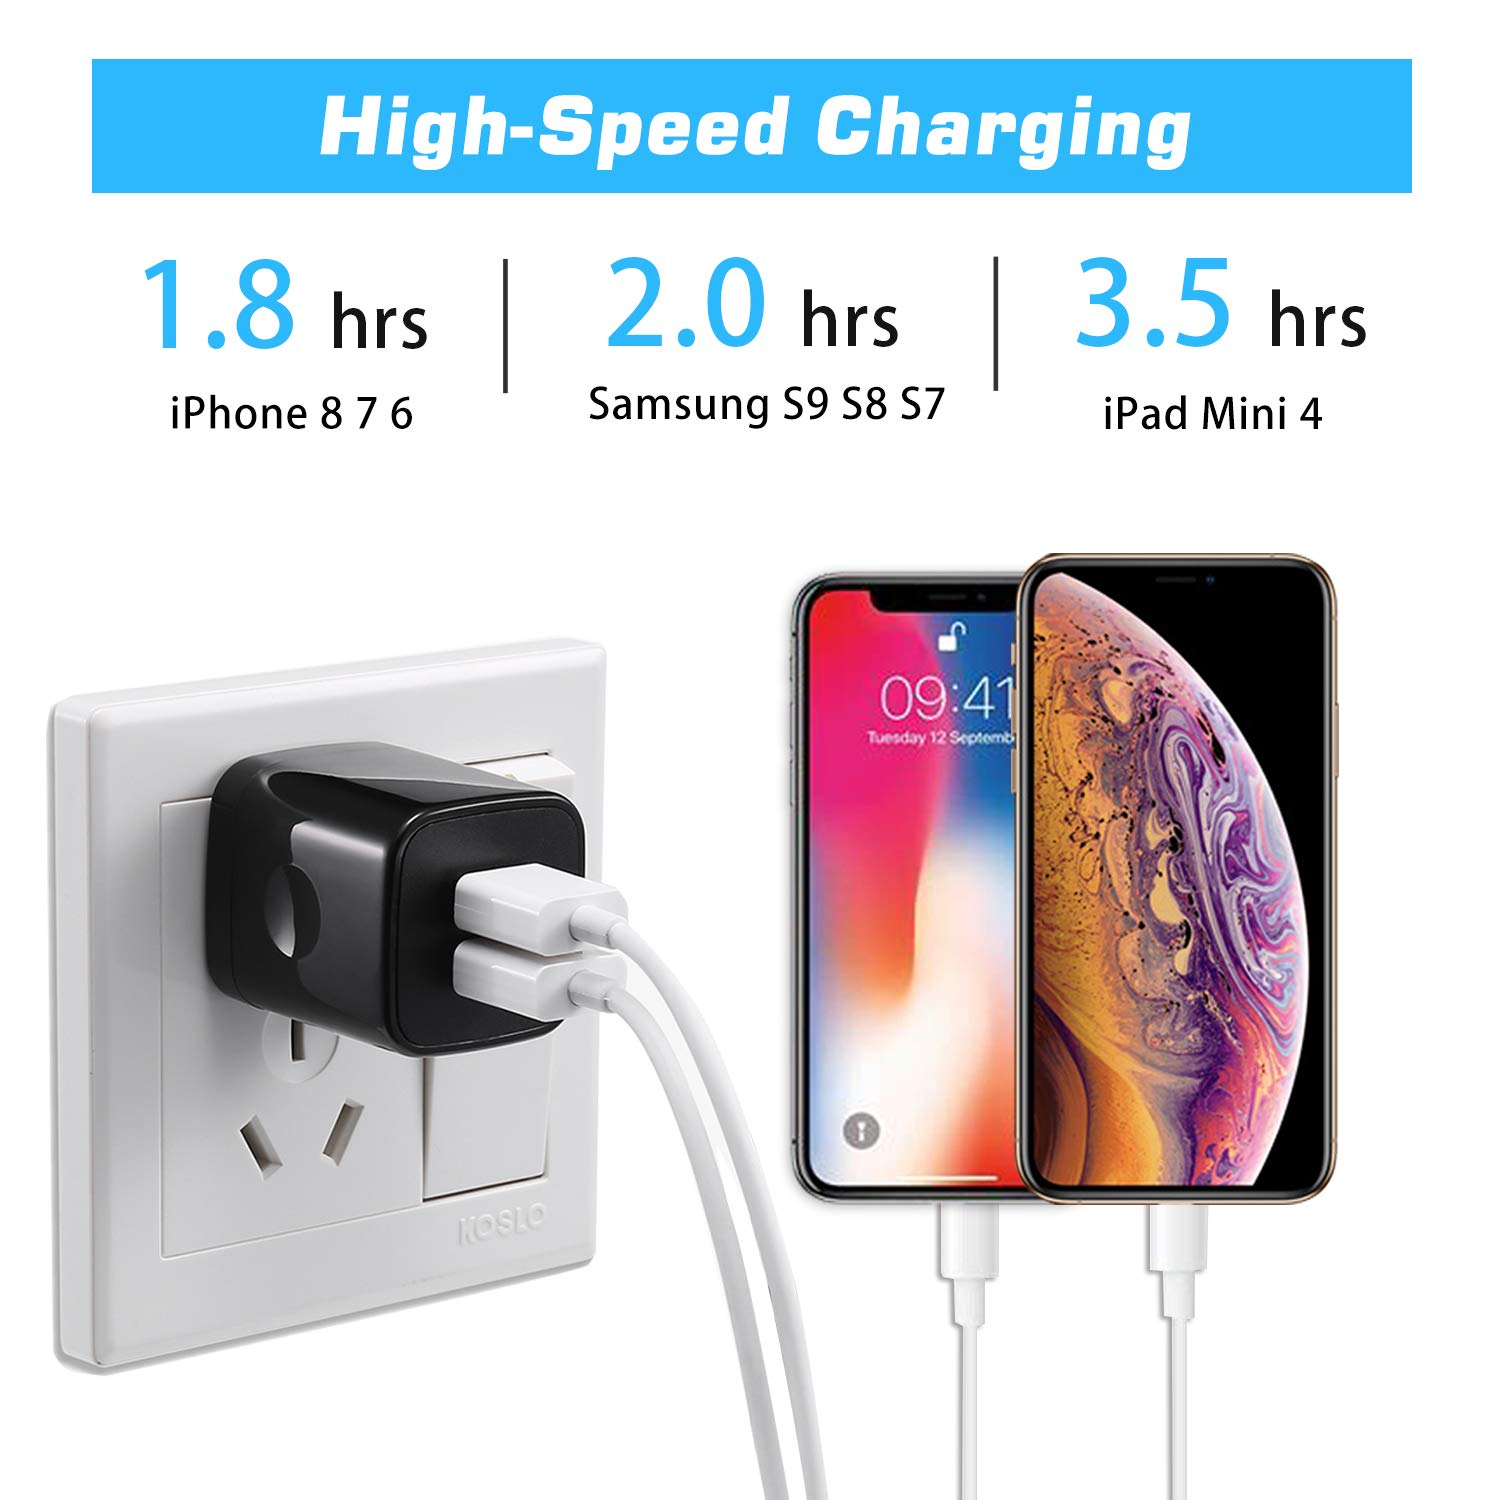 Edge Car Assesorices for Women S5 and Nexus Phones Note 5 LG G4 3 G5 iPhone 6 iPhone 7 iPhone Plus Galaxy S3 iPhone 6S S7 iPad S6 4 S4 Dual Car Universal Charger for iPhone 5